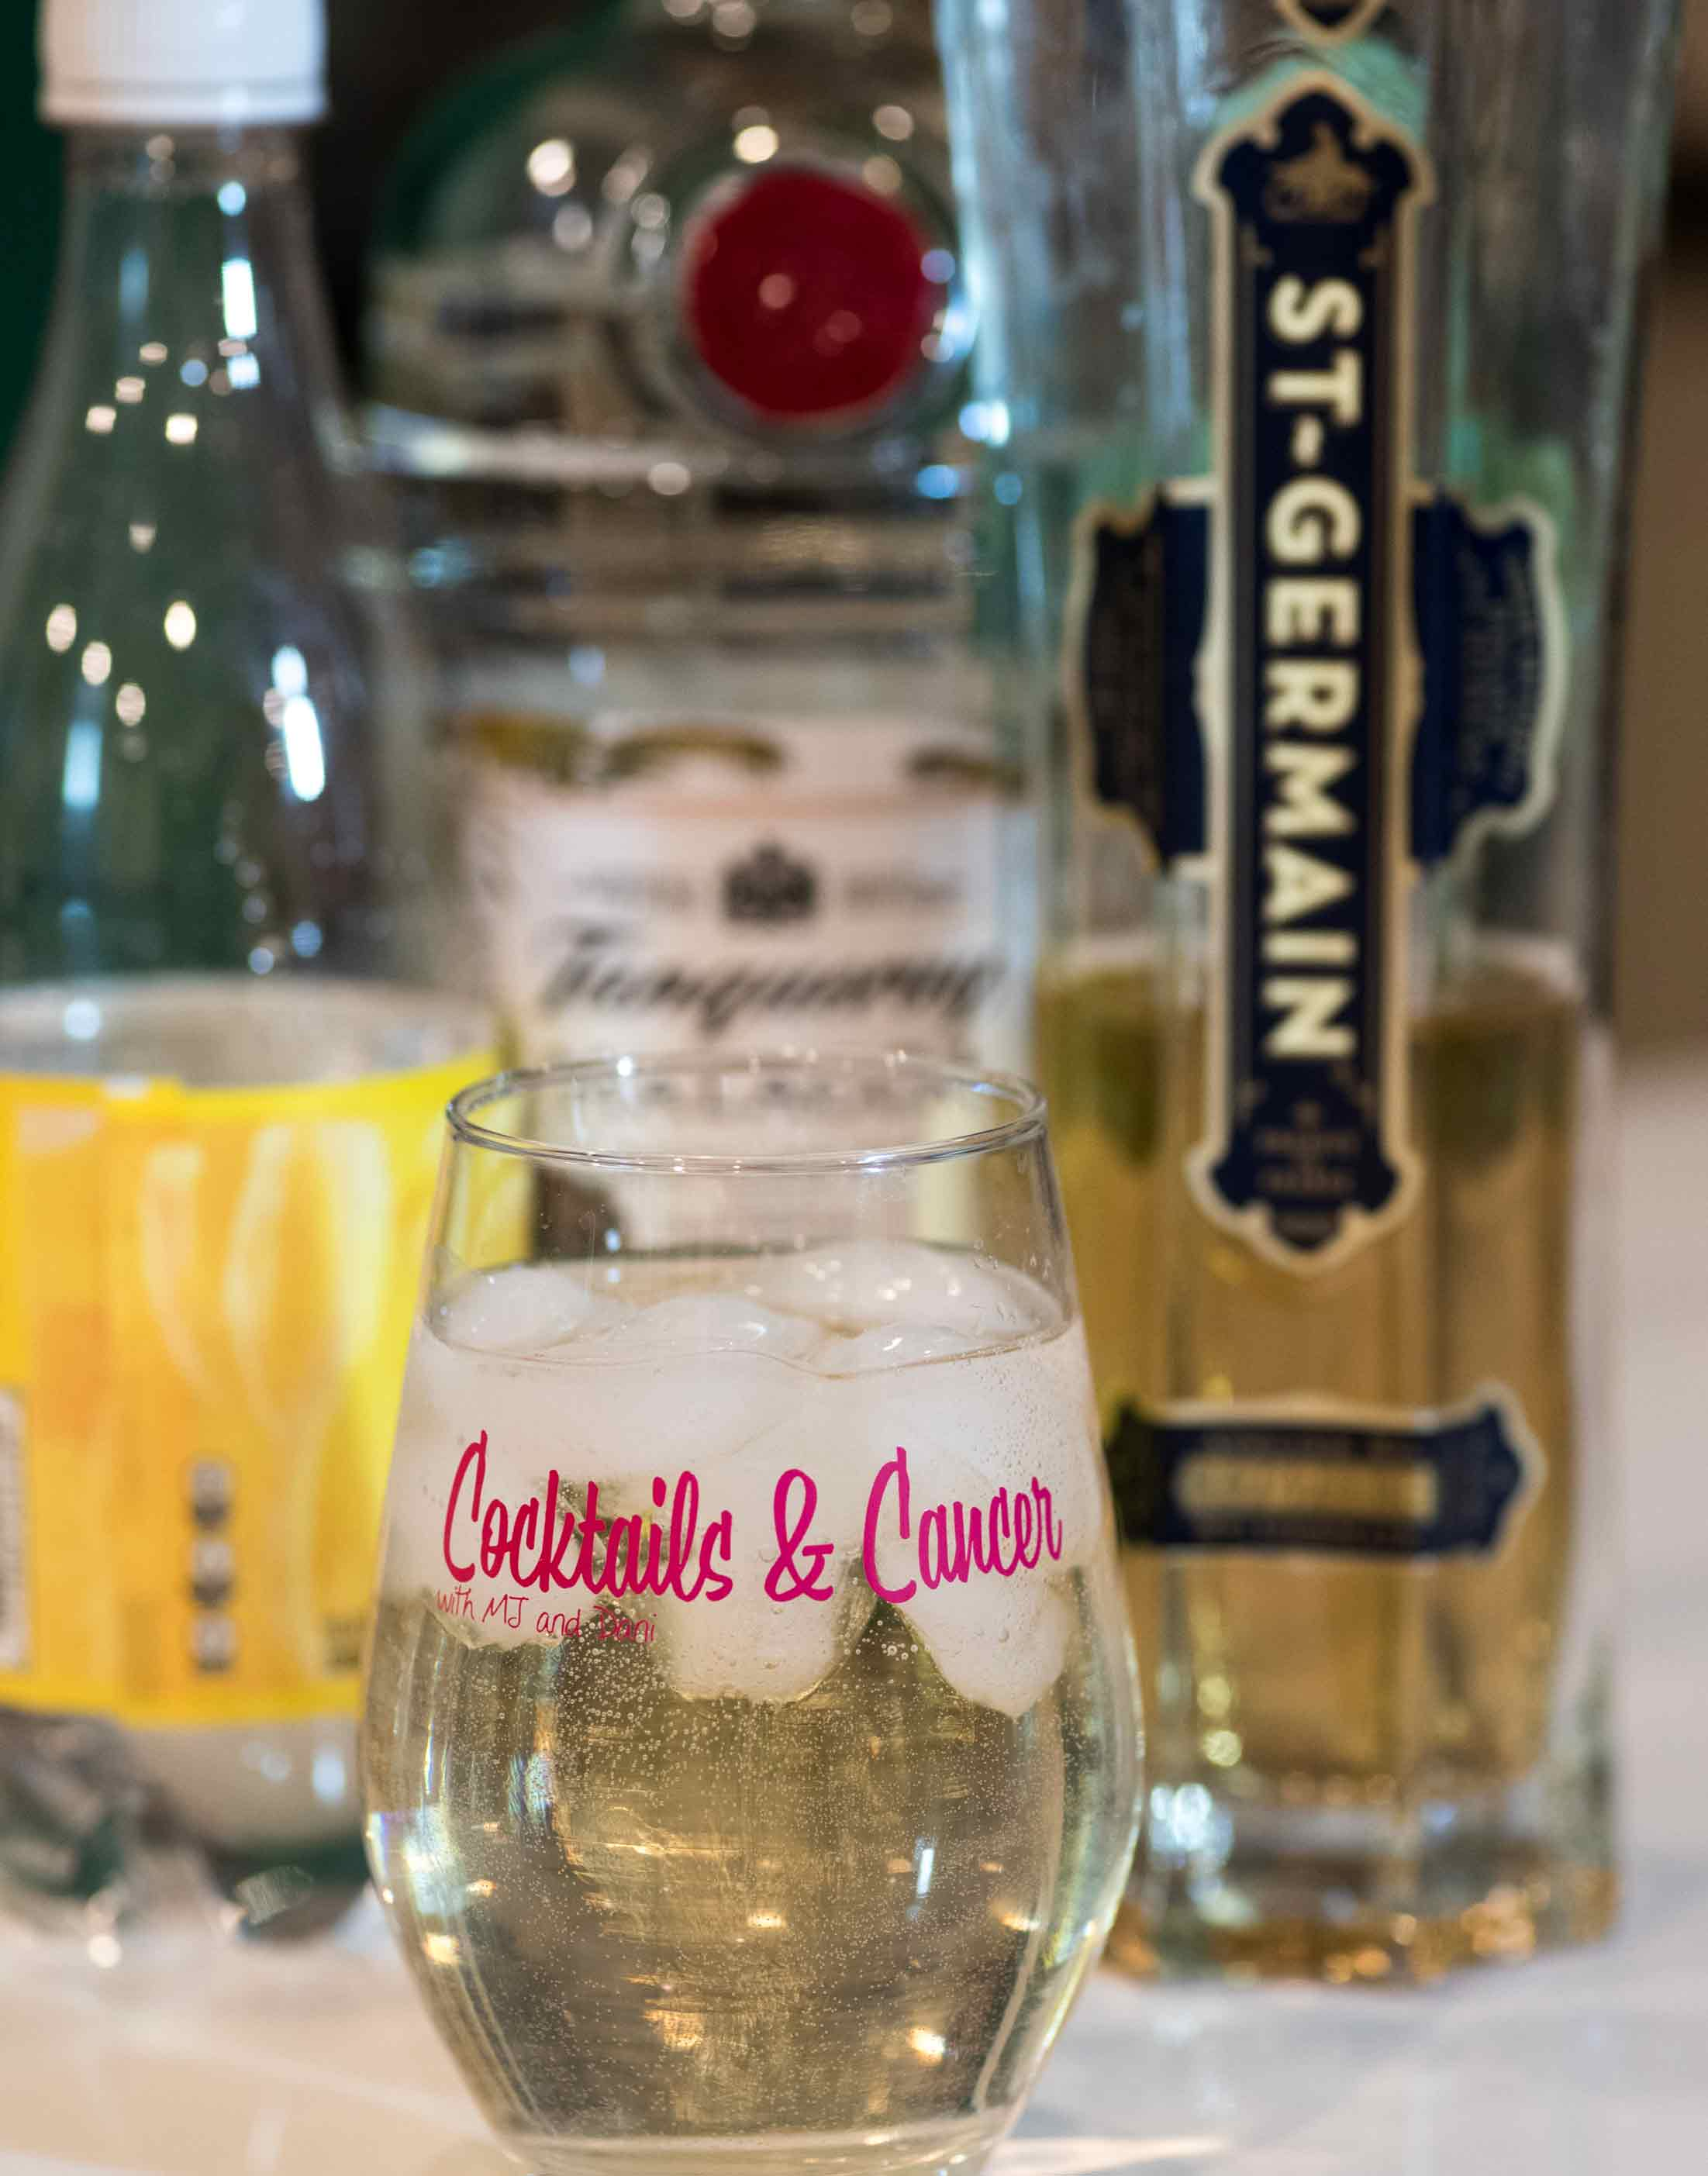 Dani's drink: Gin, St-Germain, Tonic